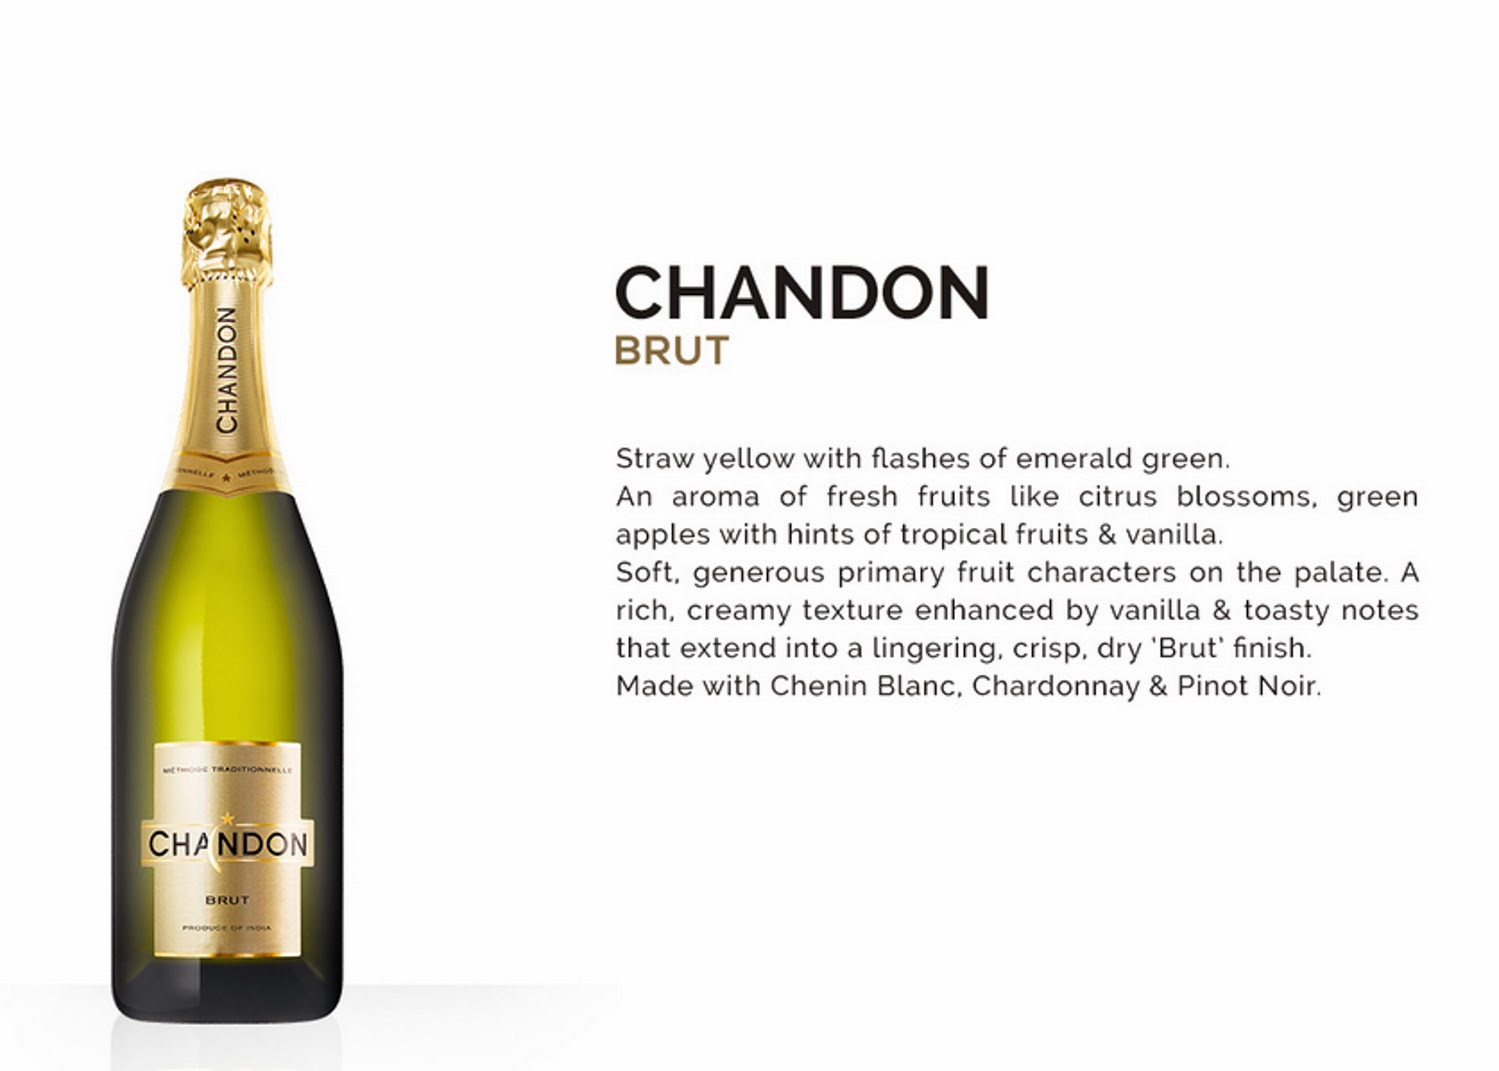 Chandon Brut Produce of India